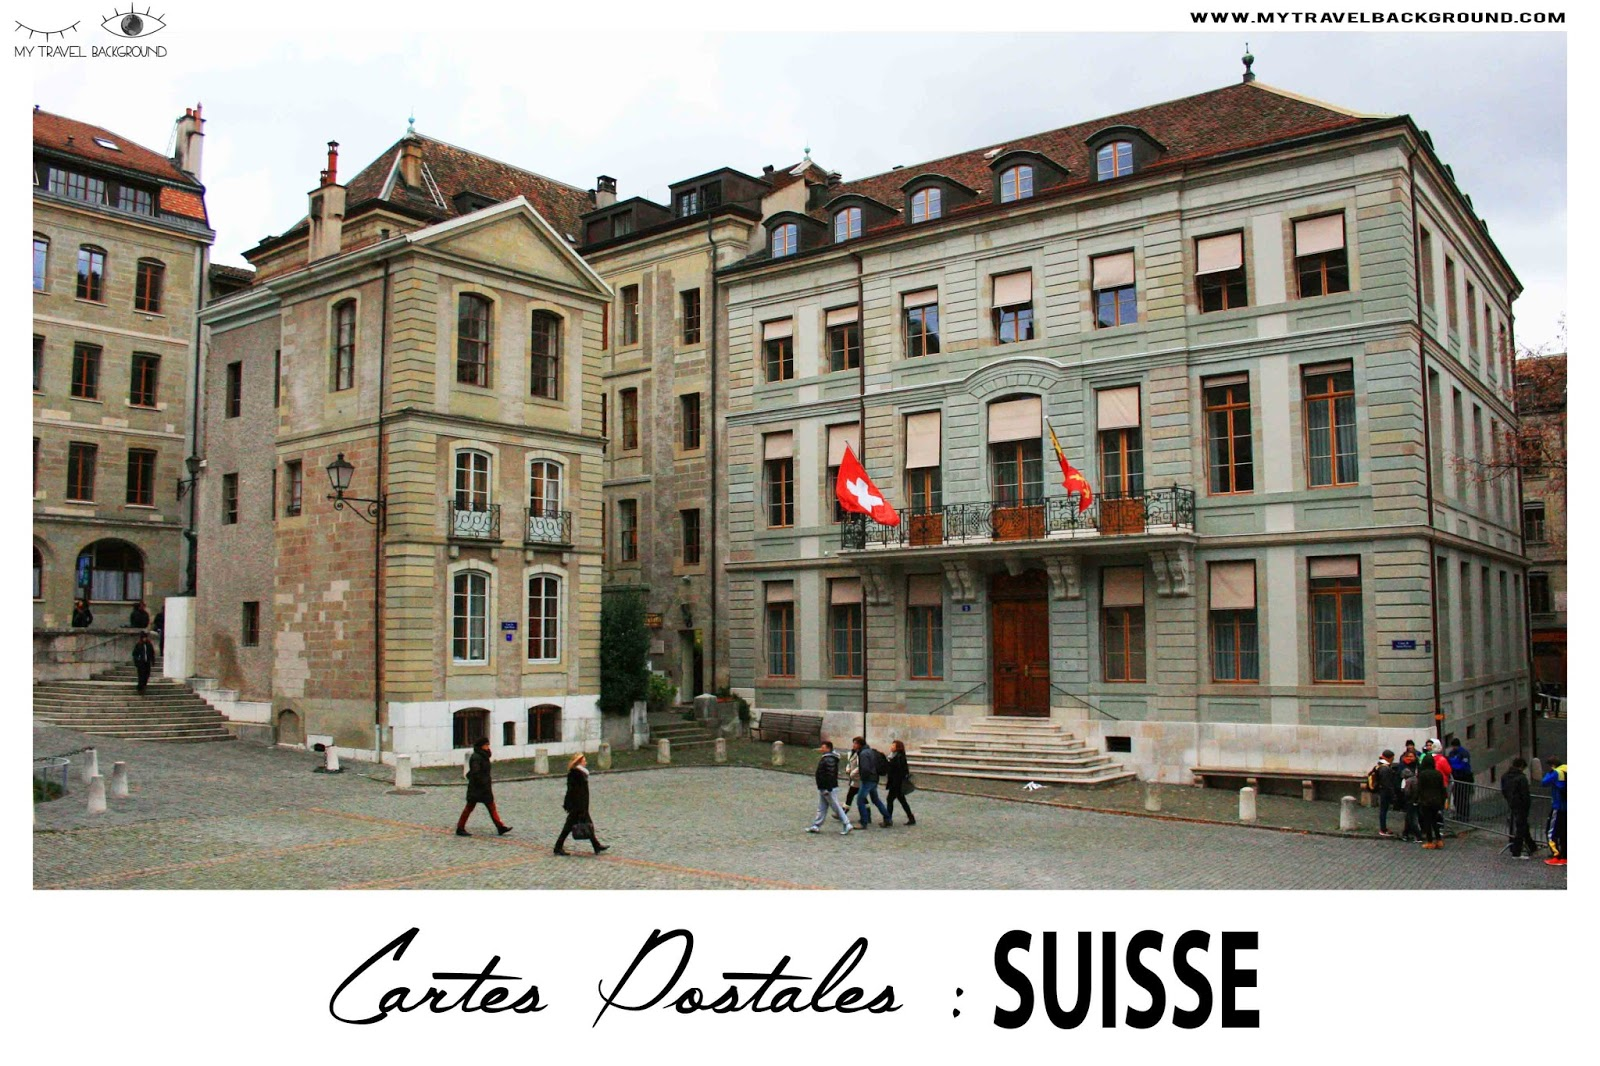 My Travel Background : Cartes Postale Suisse